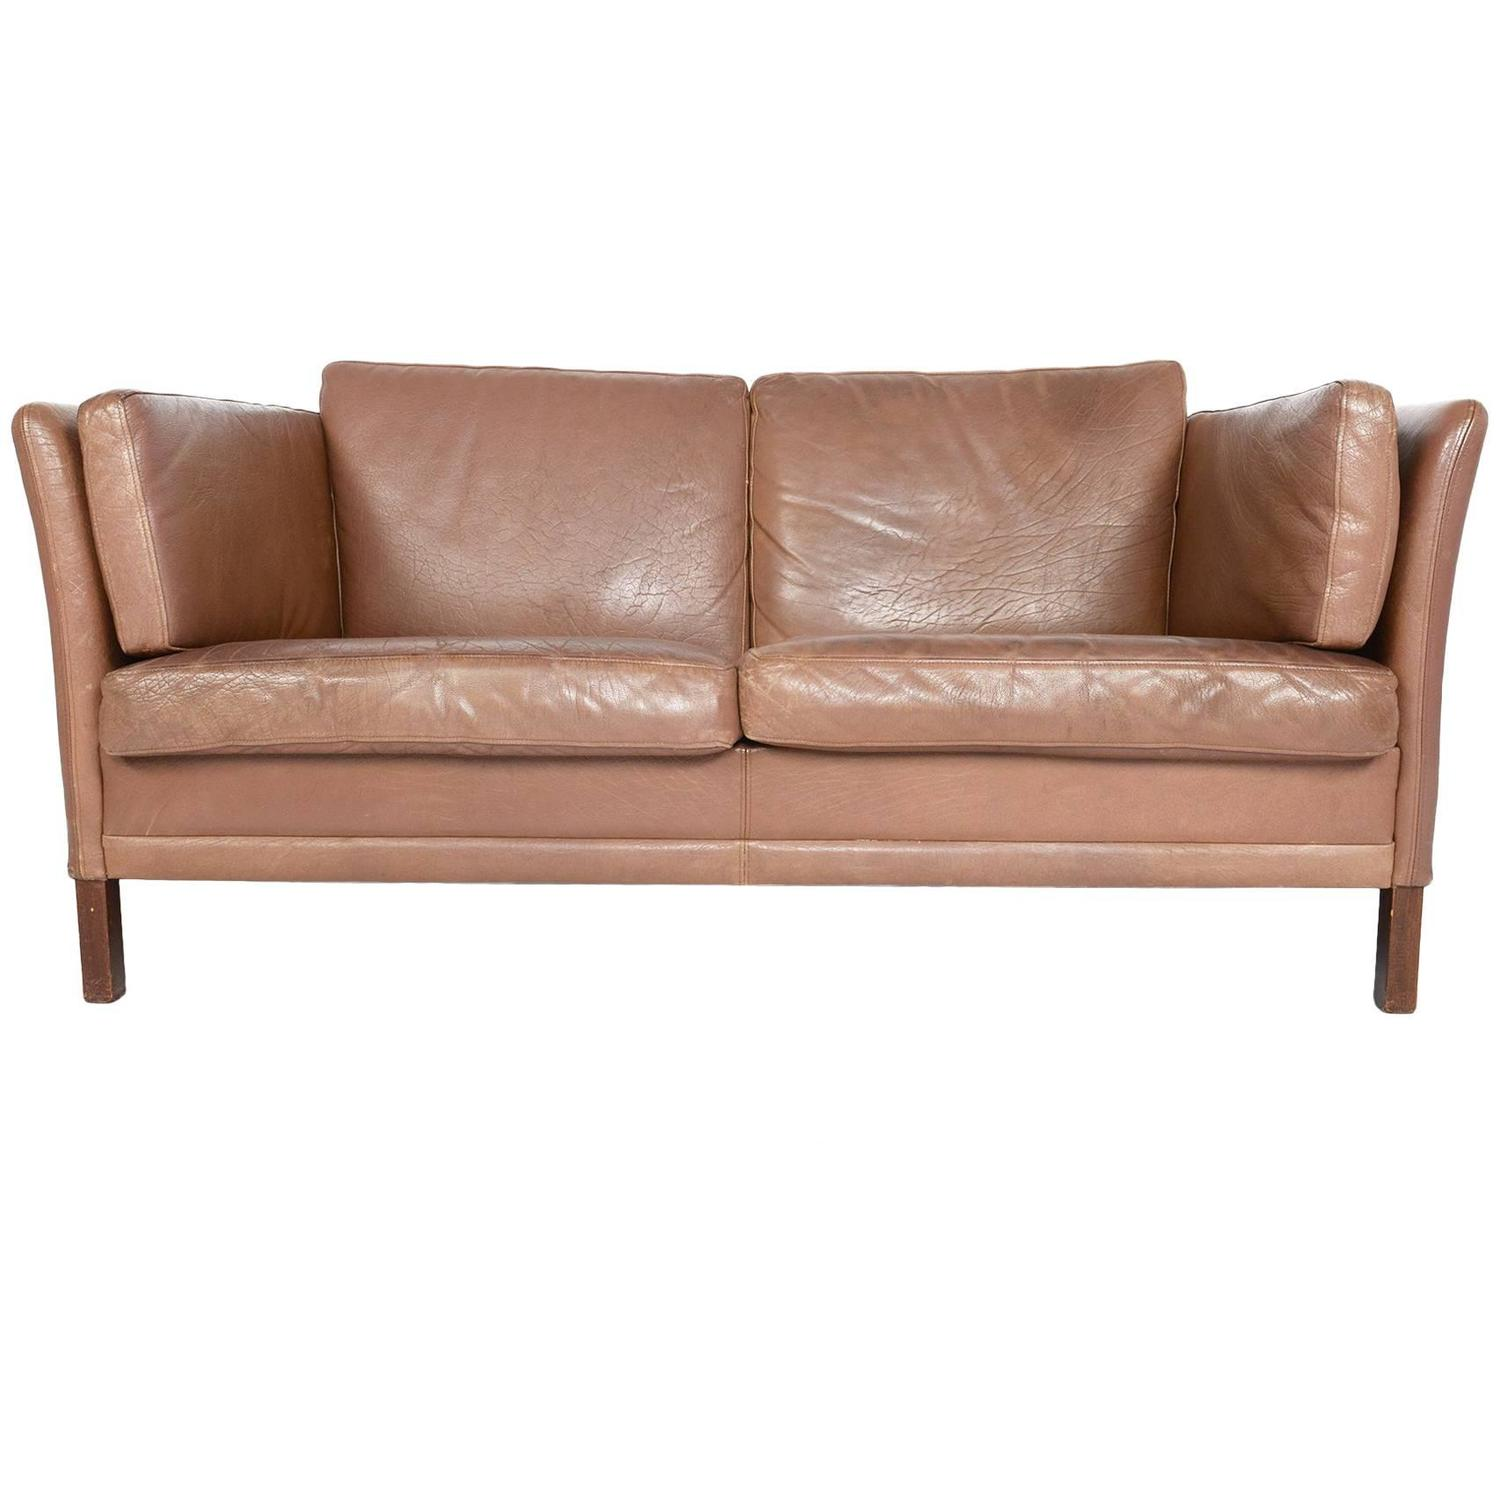 Stouby Brown Leather Loveseat Sofa at 1stdibs